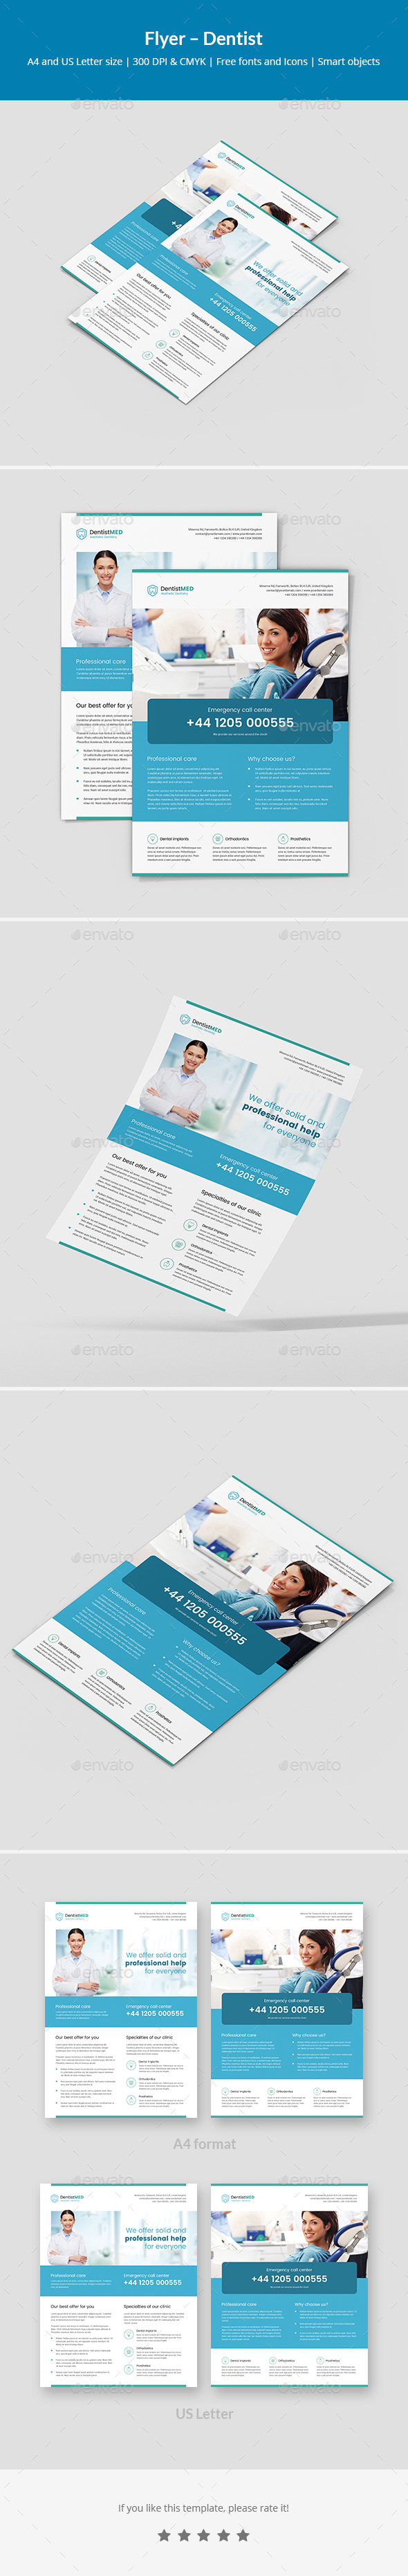 Flyer – Dentist - Corporate Flyers